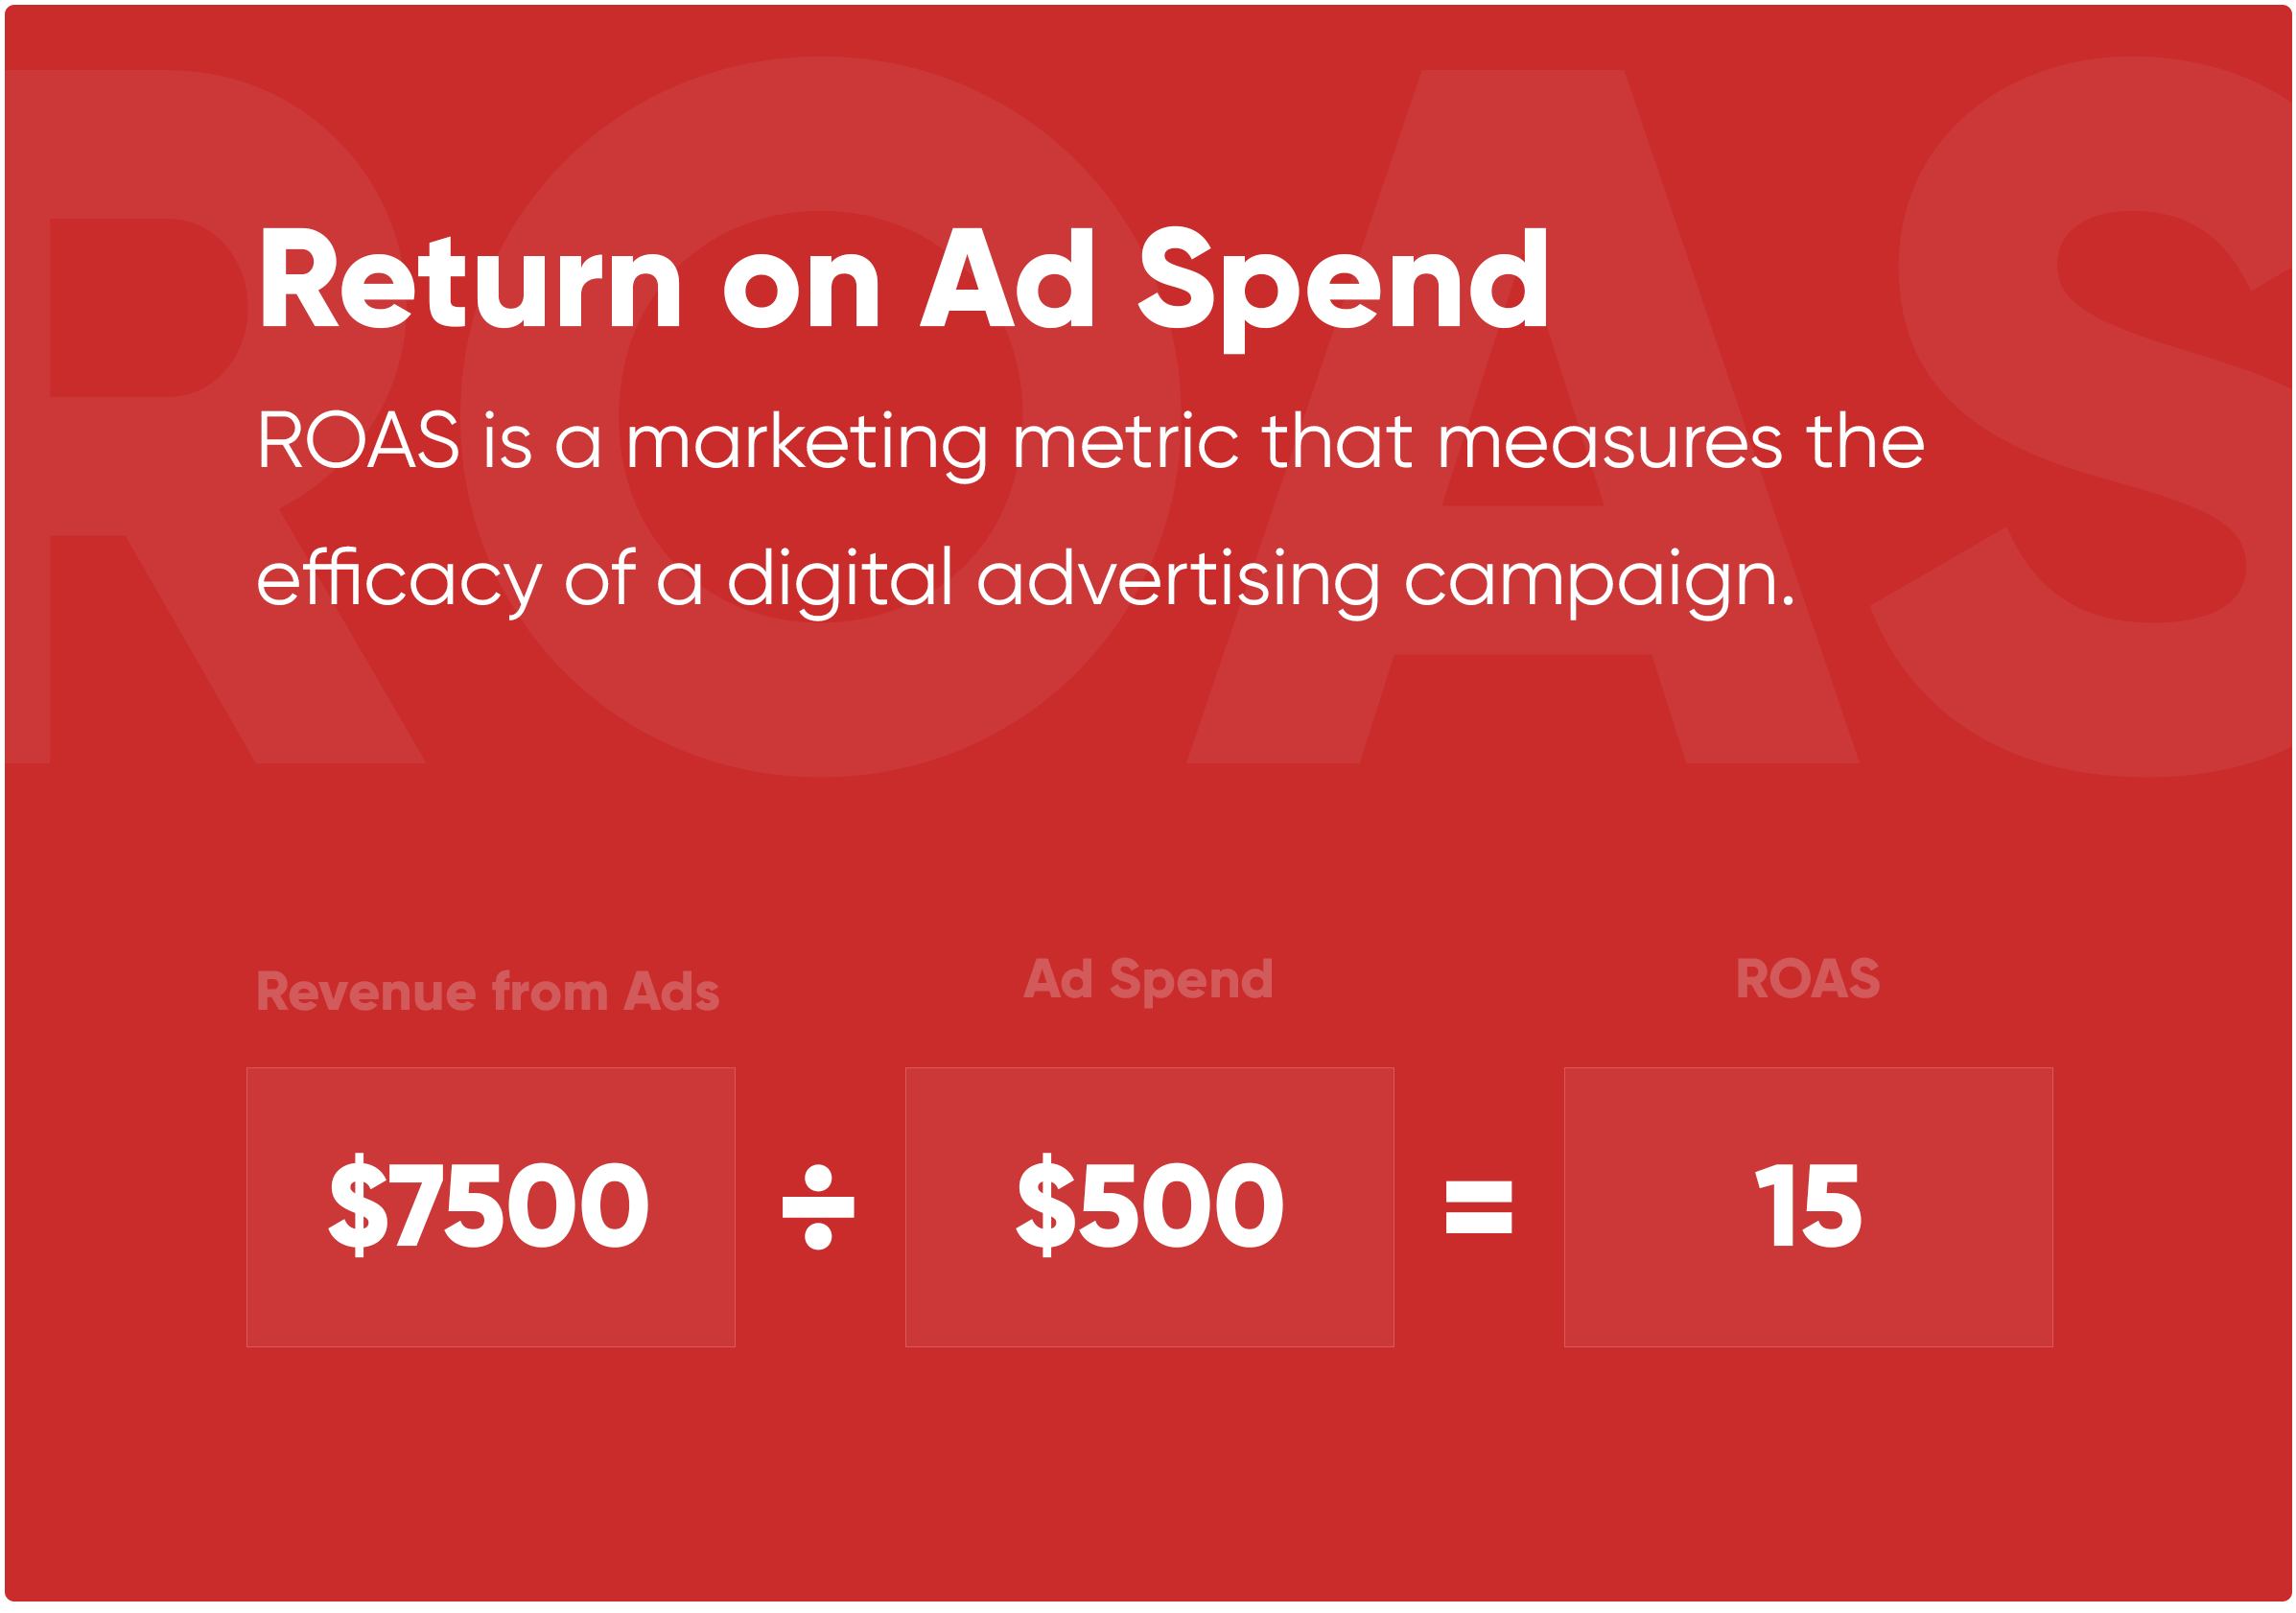 What is Return on Ad Spend (ROAS)